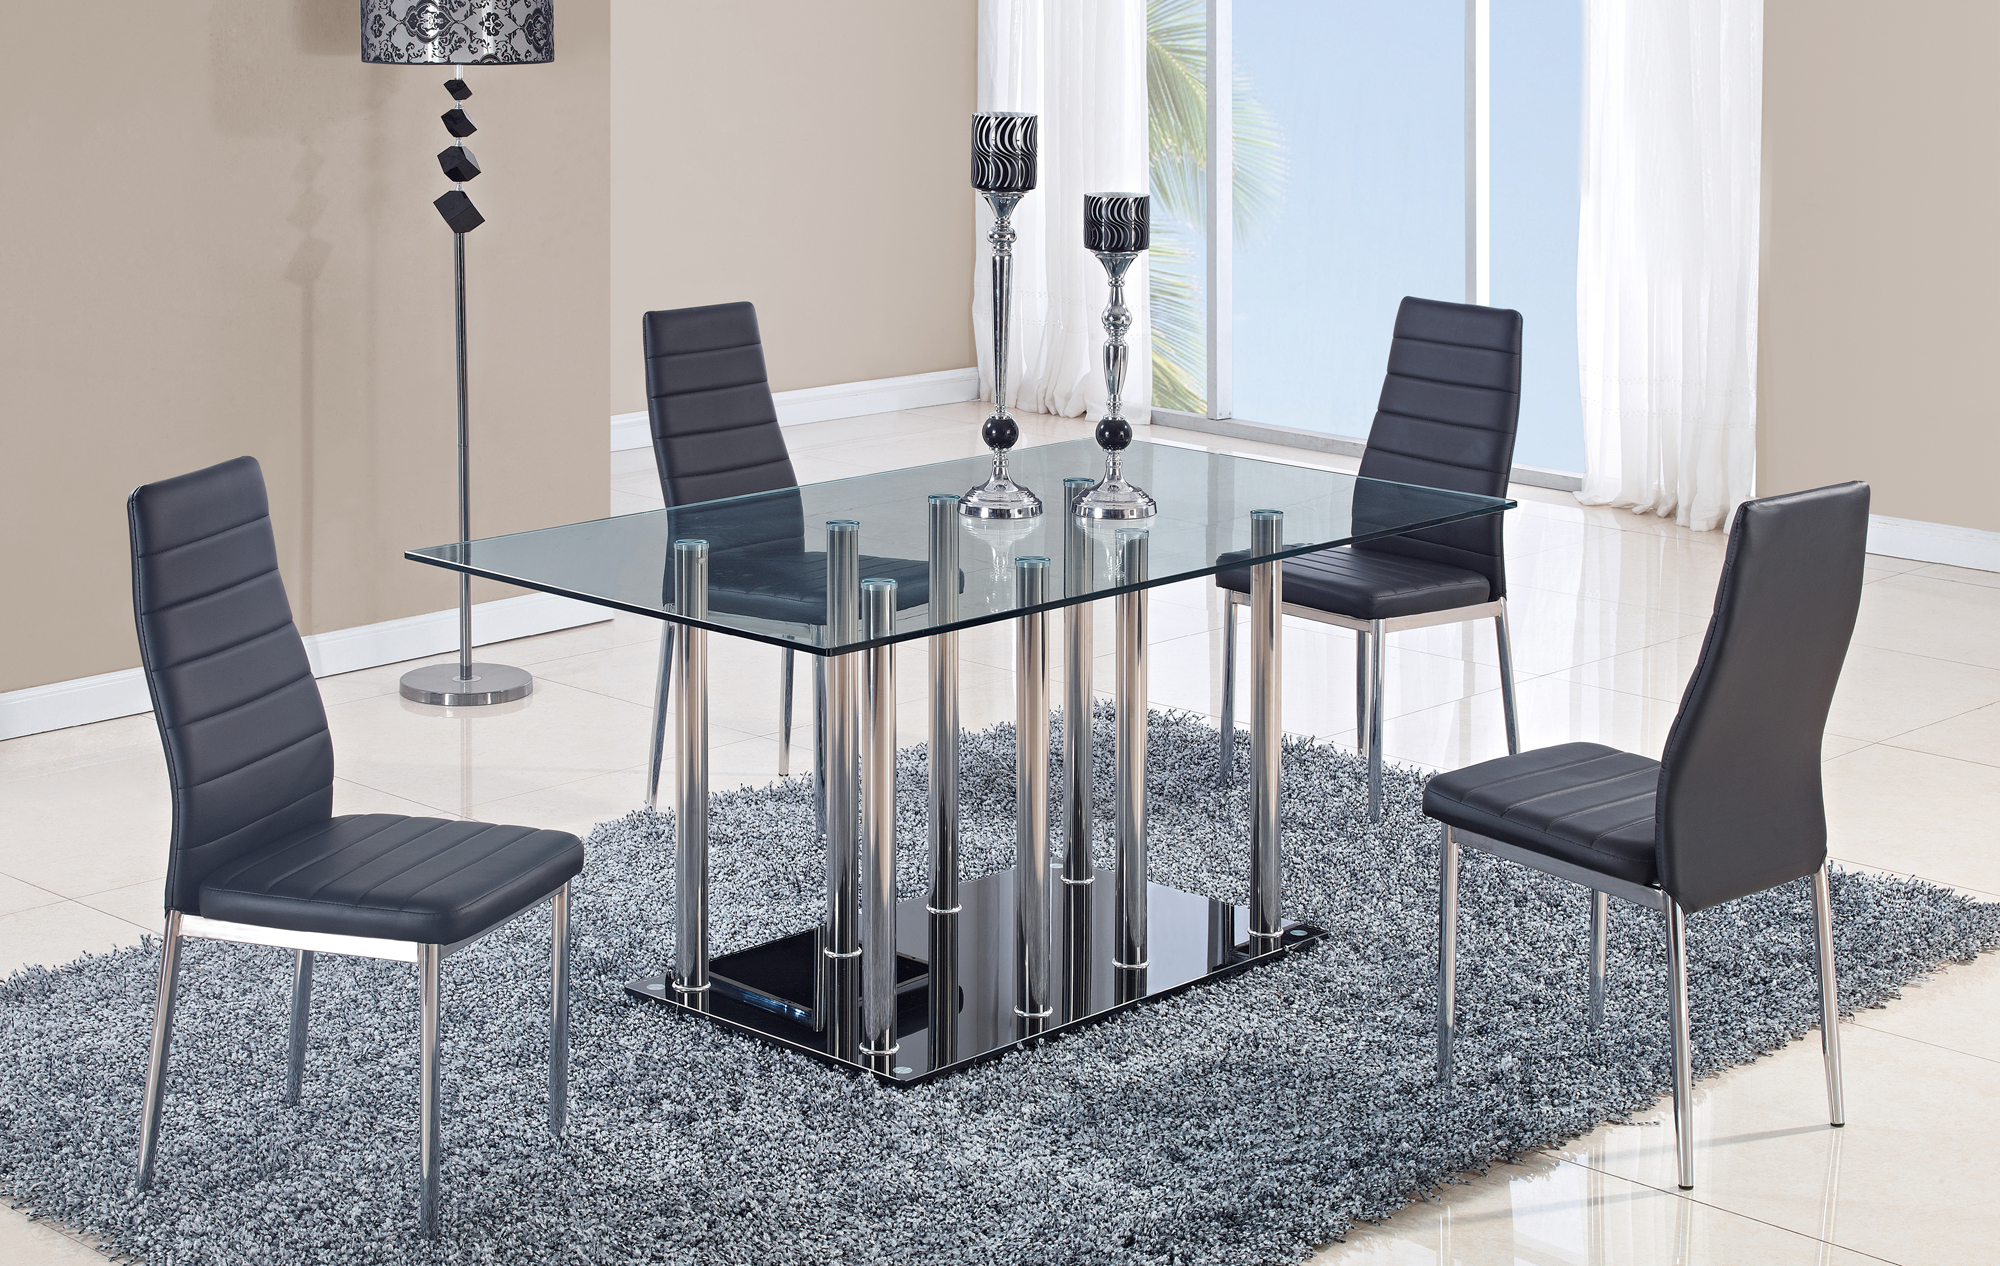 Dining table d368dt stainless black base by global furniture for Epl table 99 00